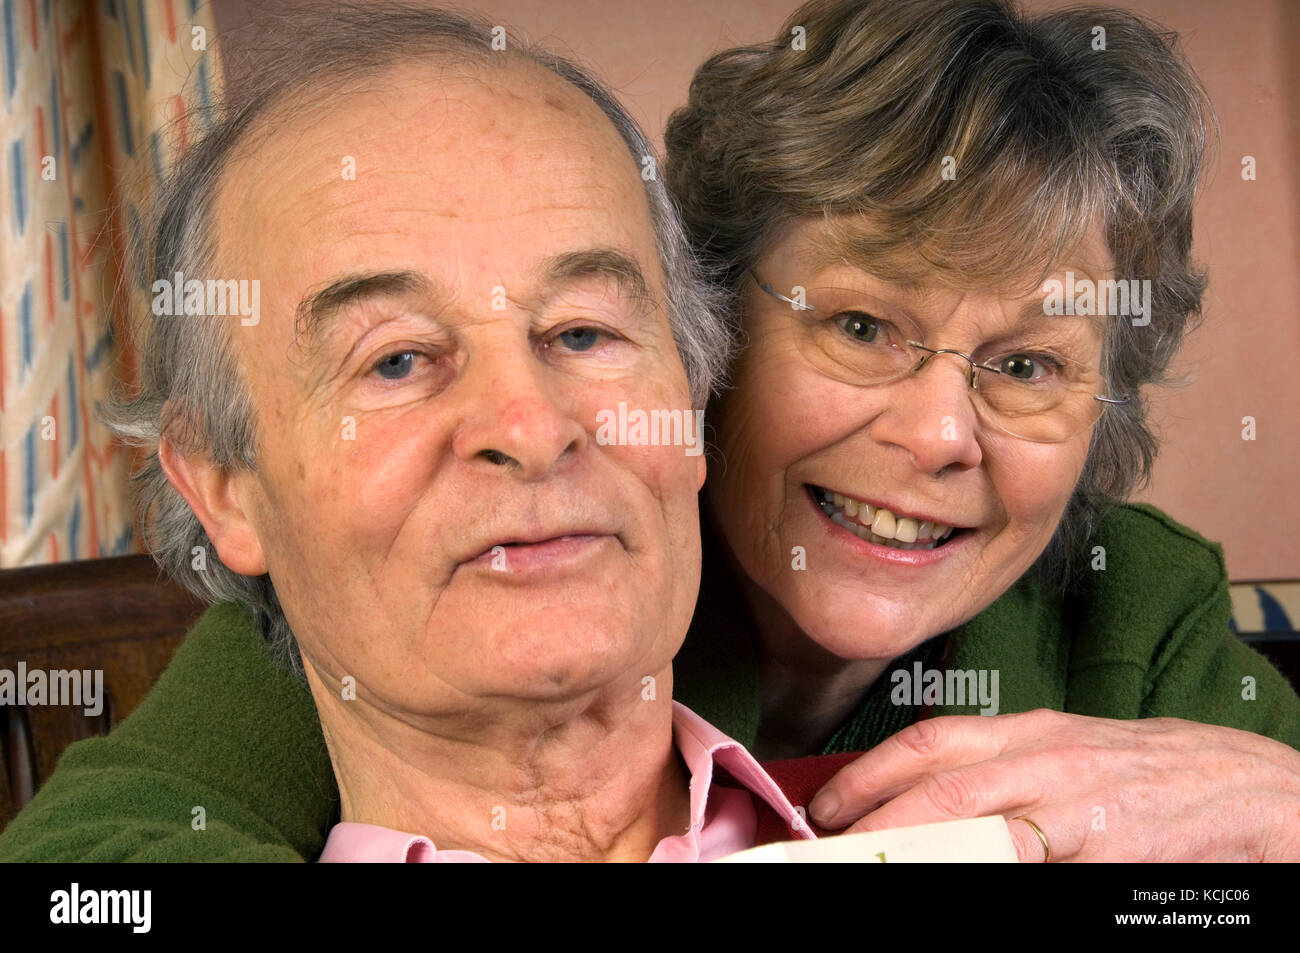 Jane & Robert Fearnley-Whittingstall, parents of Hugh Fearnley-Whittingstall. - Stock Image